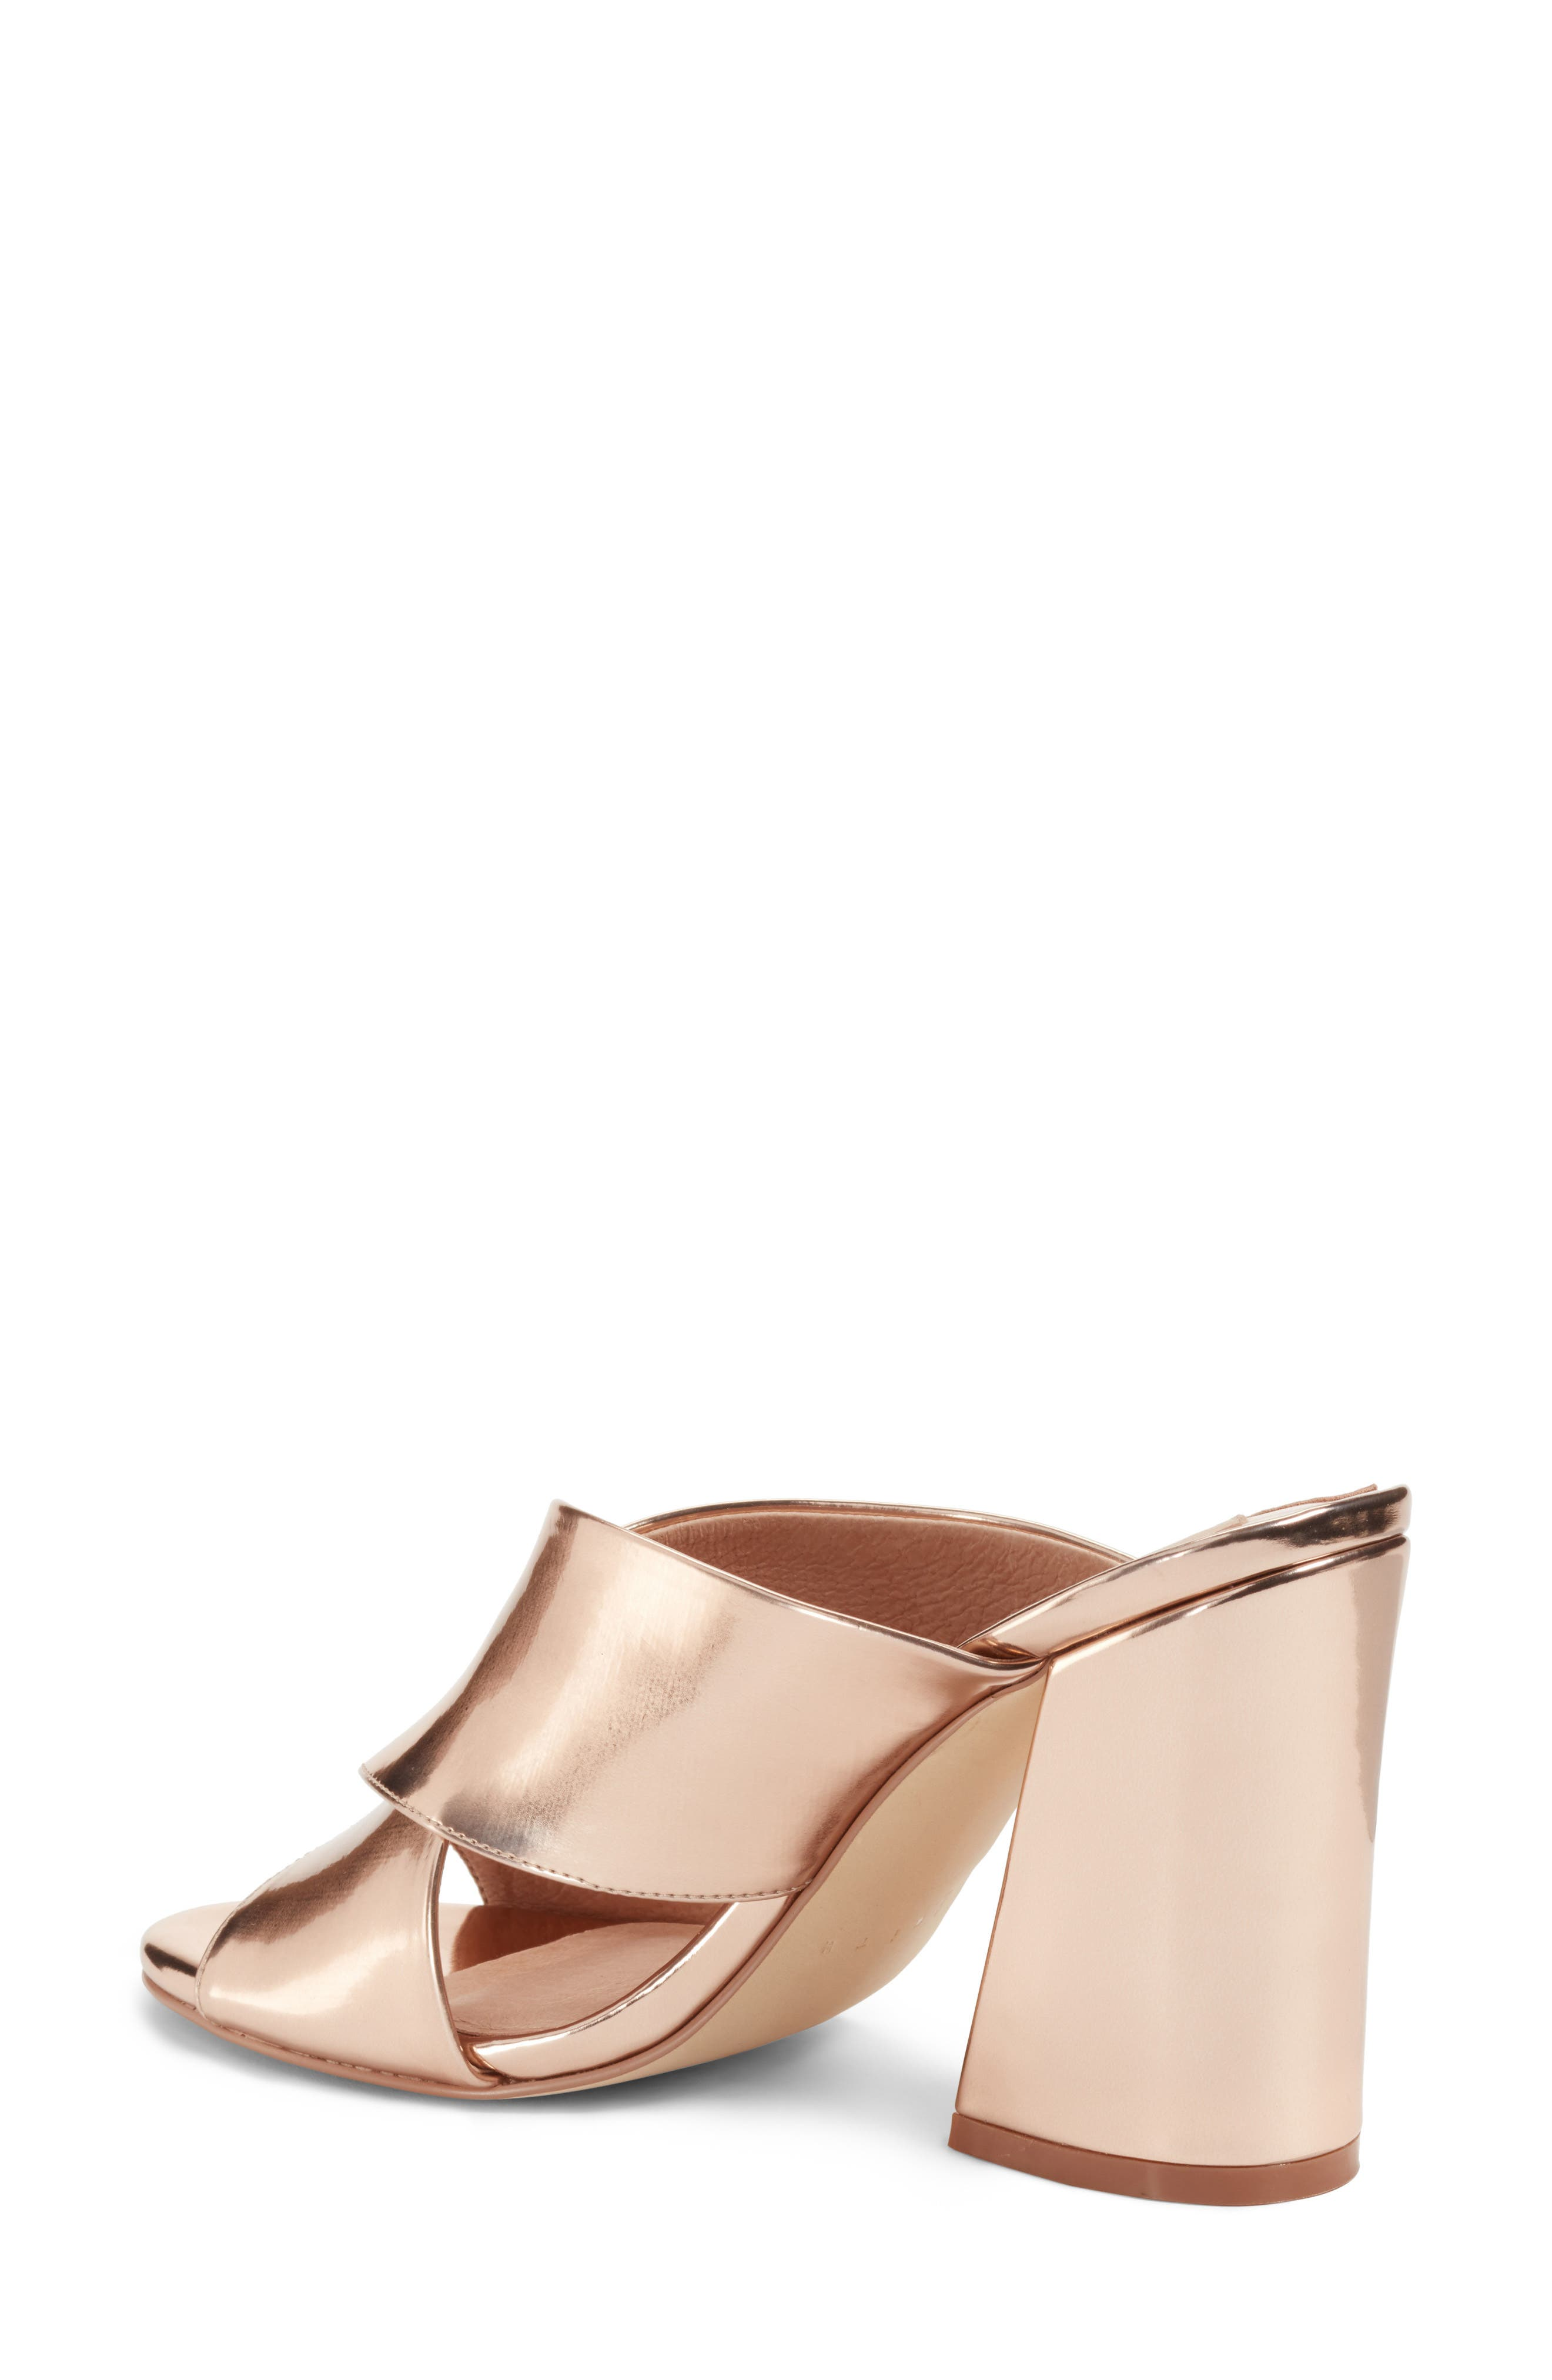 Cammie Block Heel Sandal,                             Alternate thumbnail 2, color,                             Rosegold Metallic Faux Leather